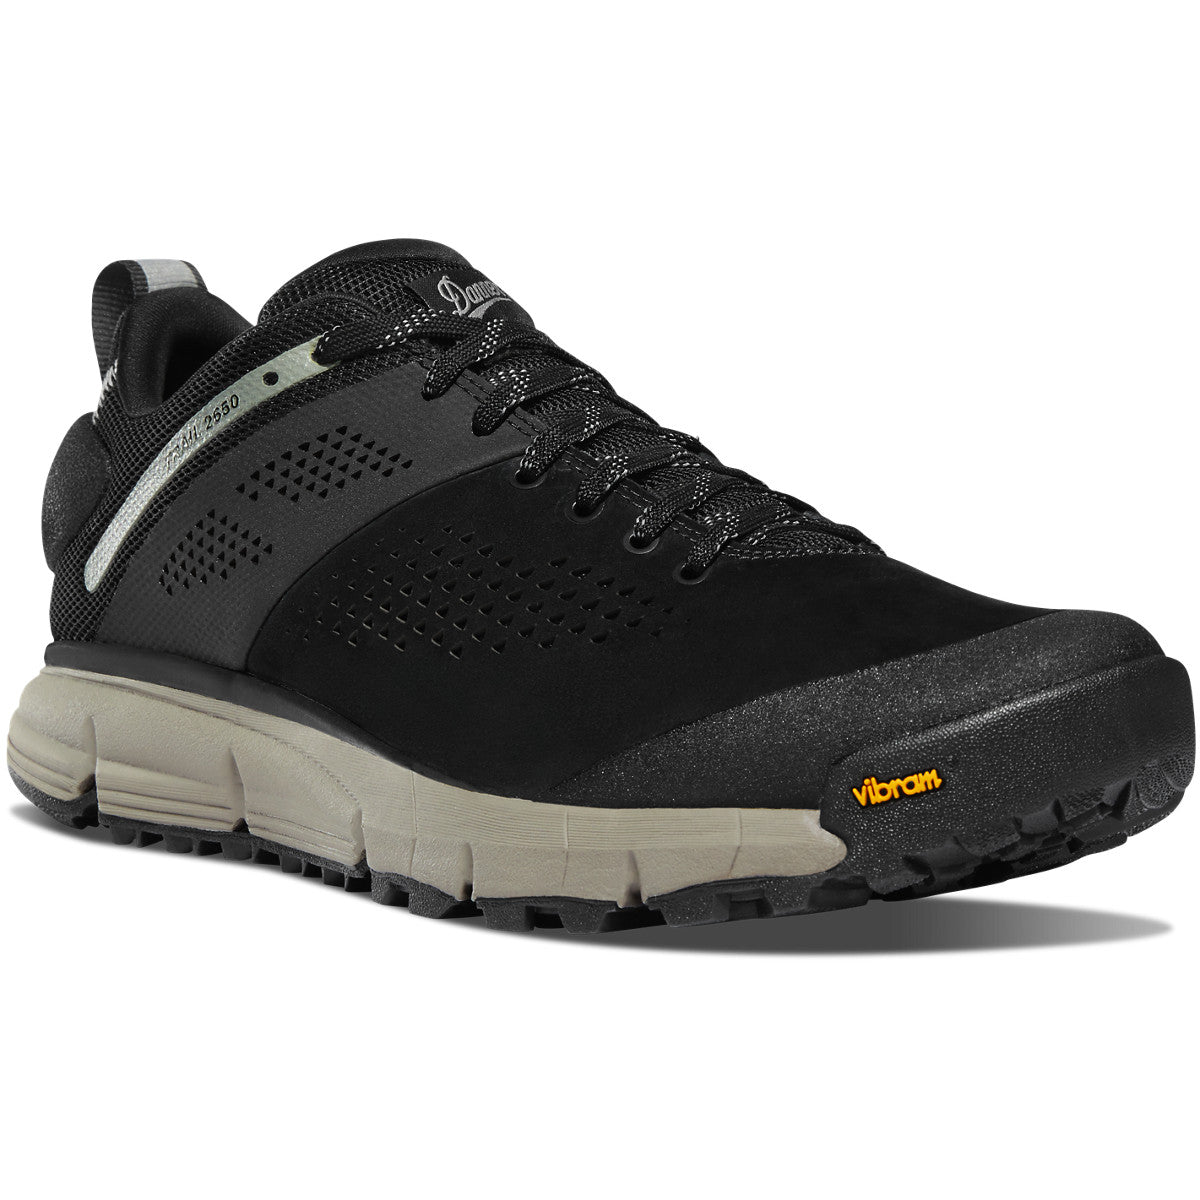 Danner Men's Trail Shoe - 88 Gear